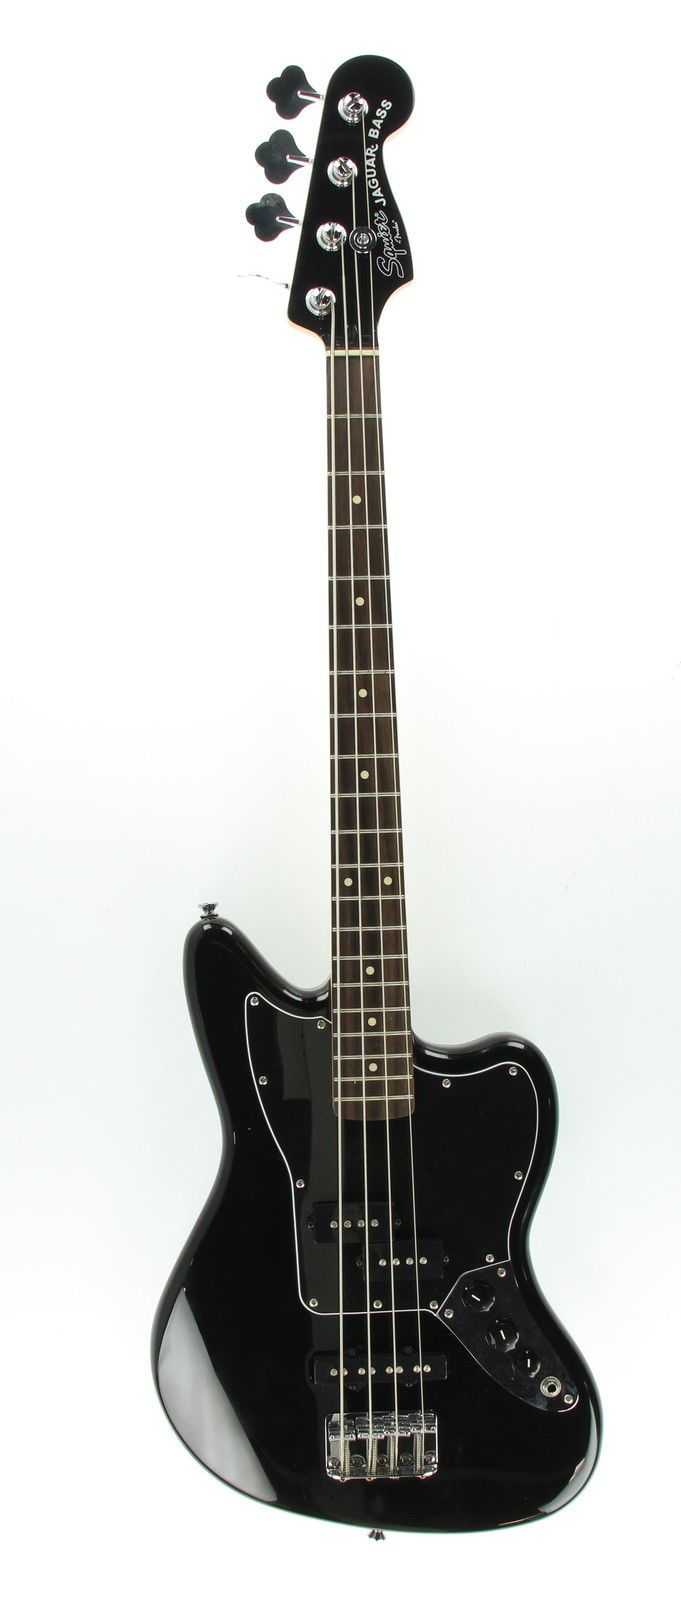 FENDER Squier Jaguar Bass Black 4 String Hardwood Electric Guitar